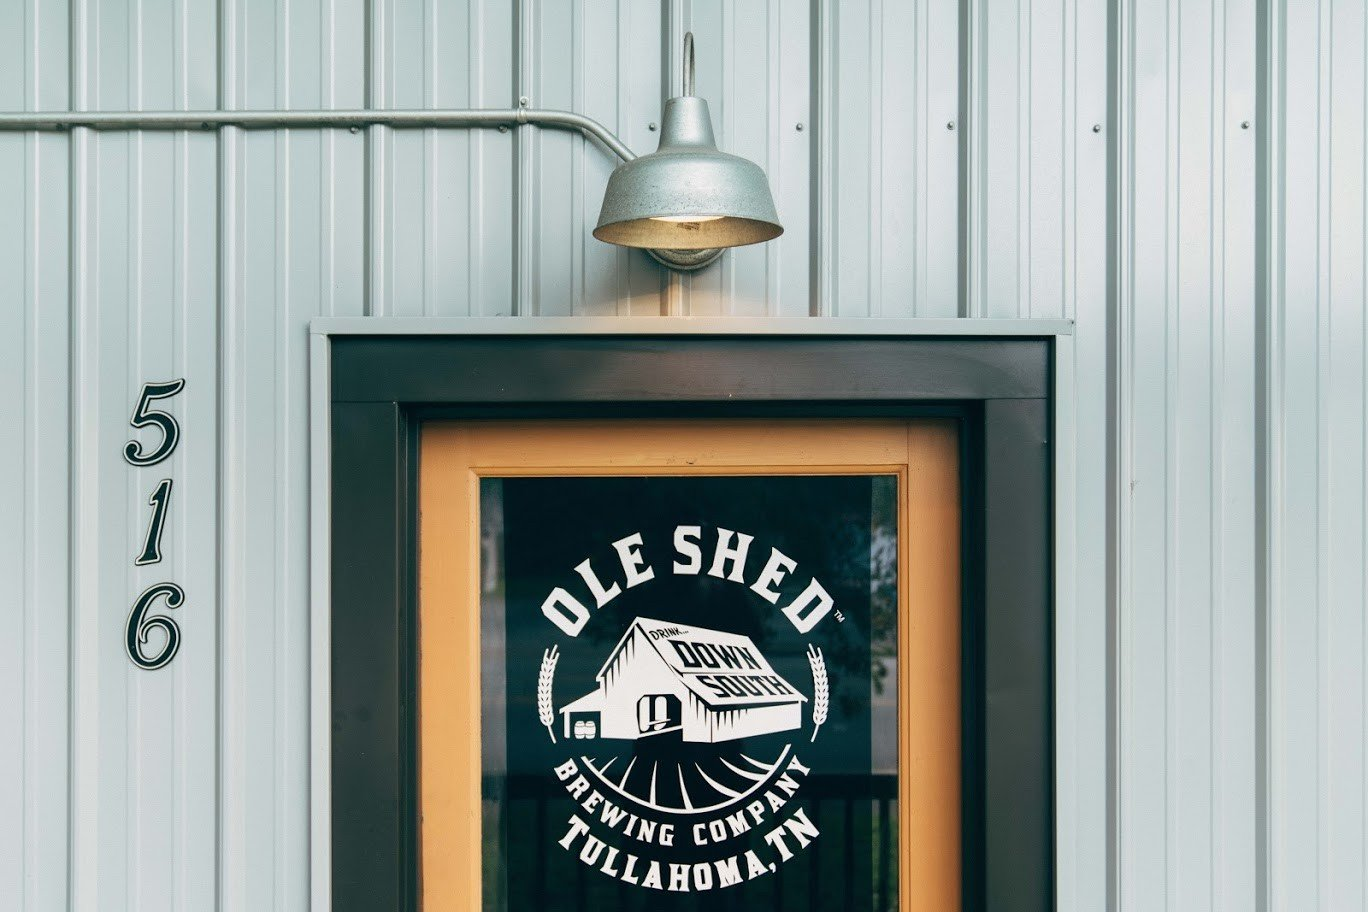 old-shed-brewing-company-tullahoma-tennessee.jpeg